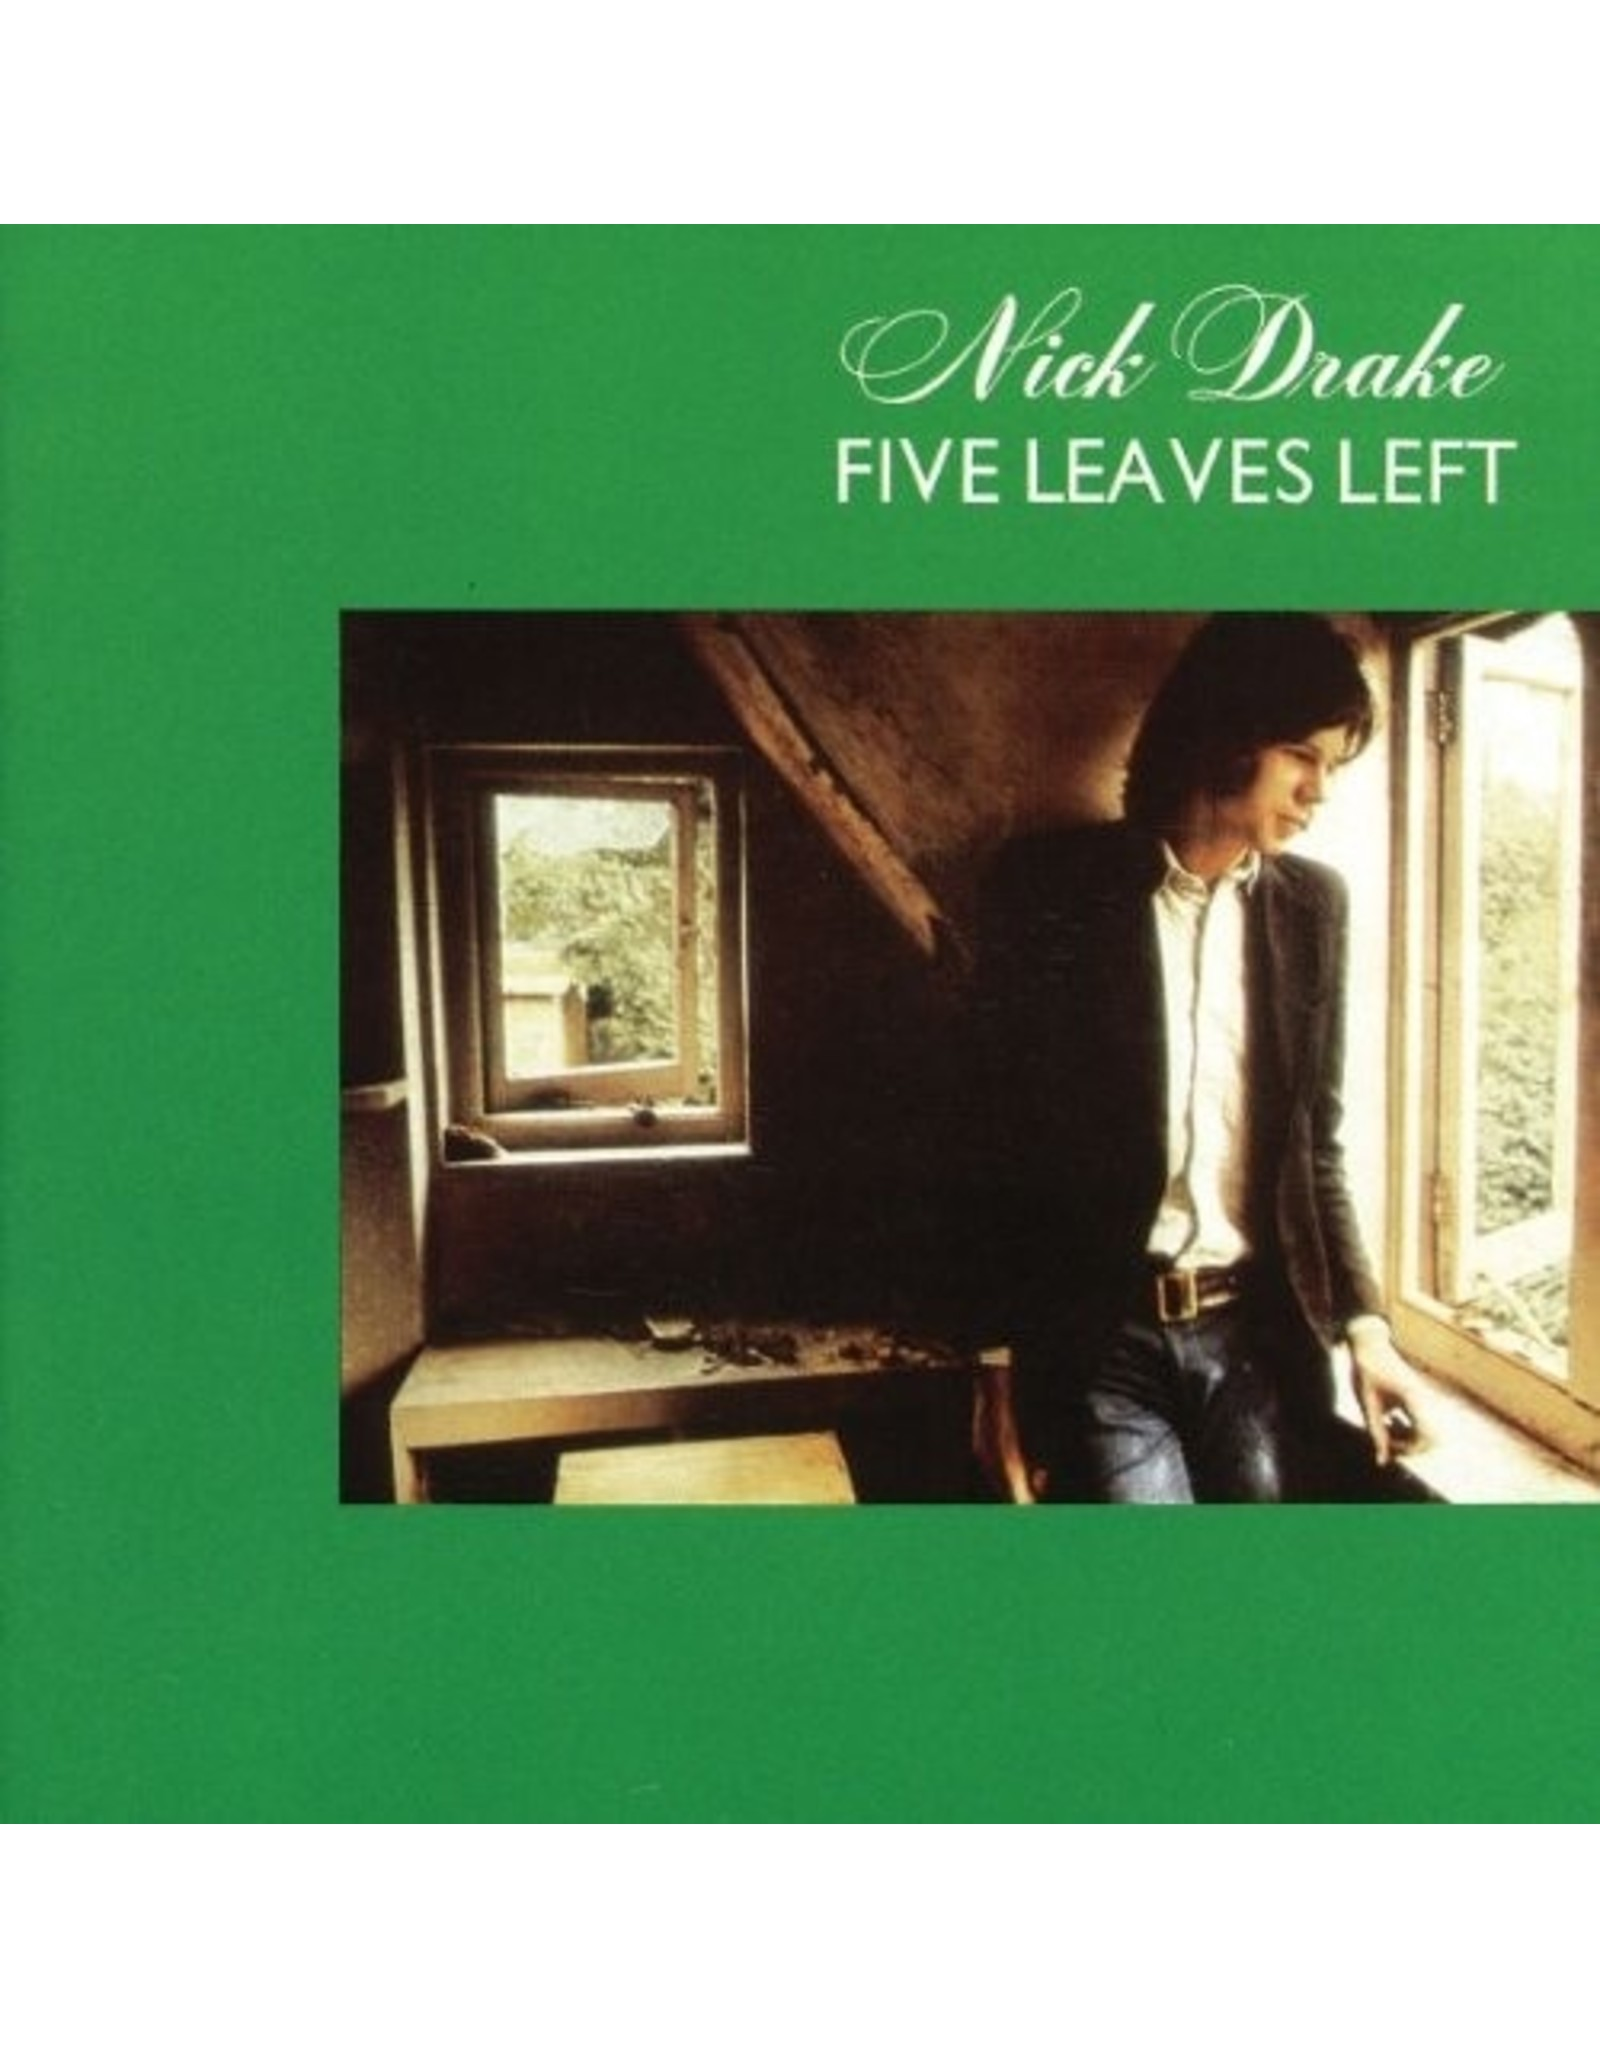 New Vinyl Nick Drake - Five Leaves Left LP